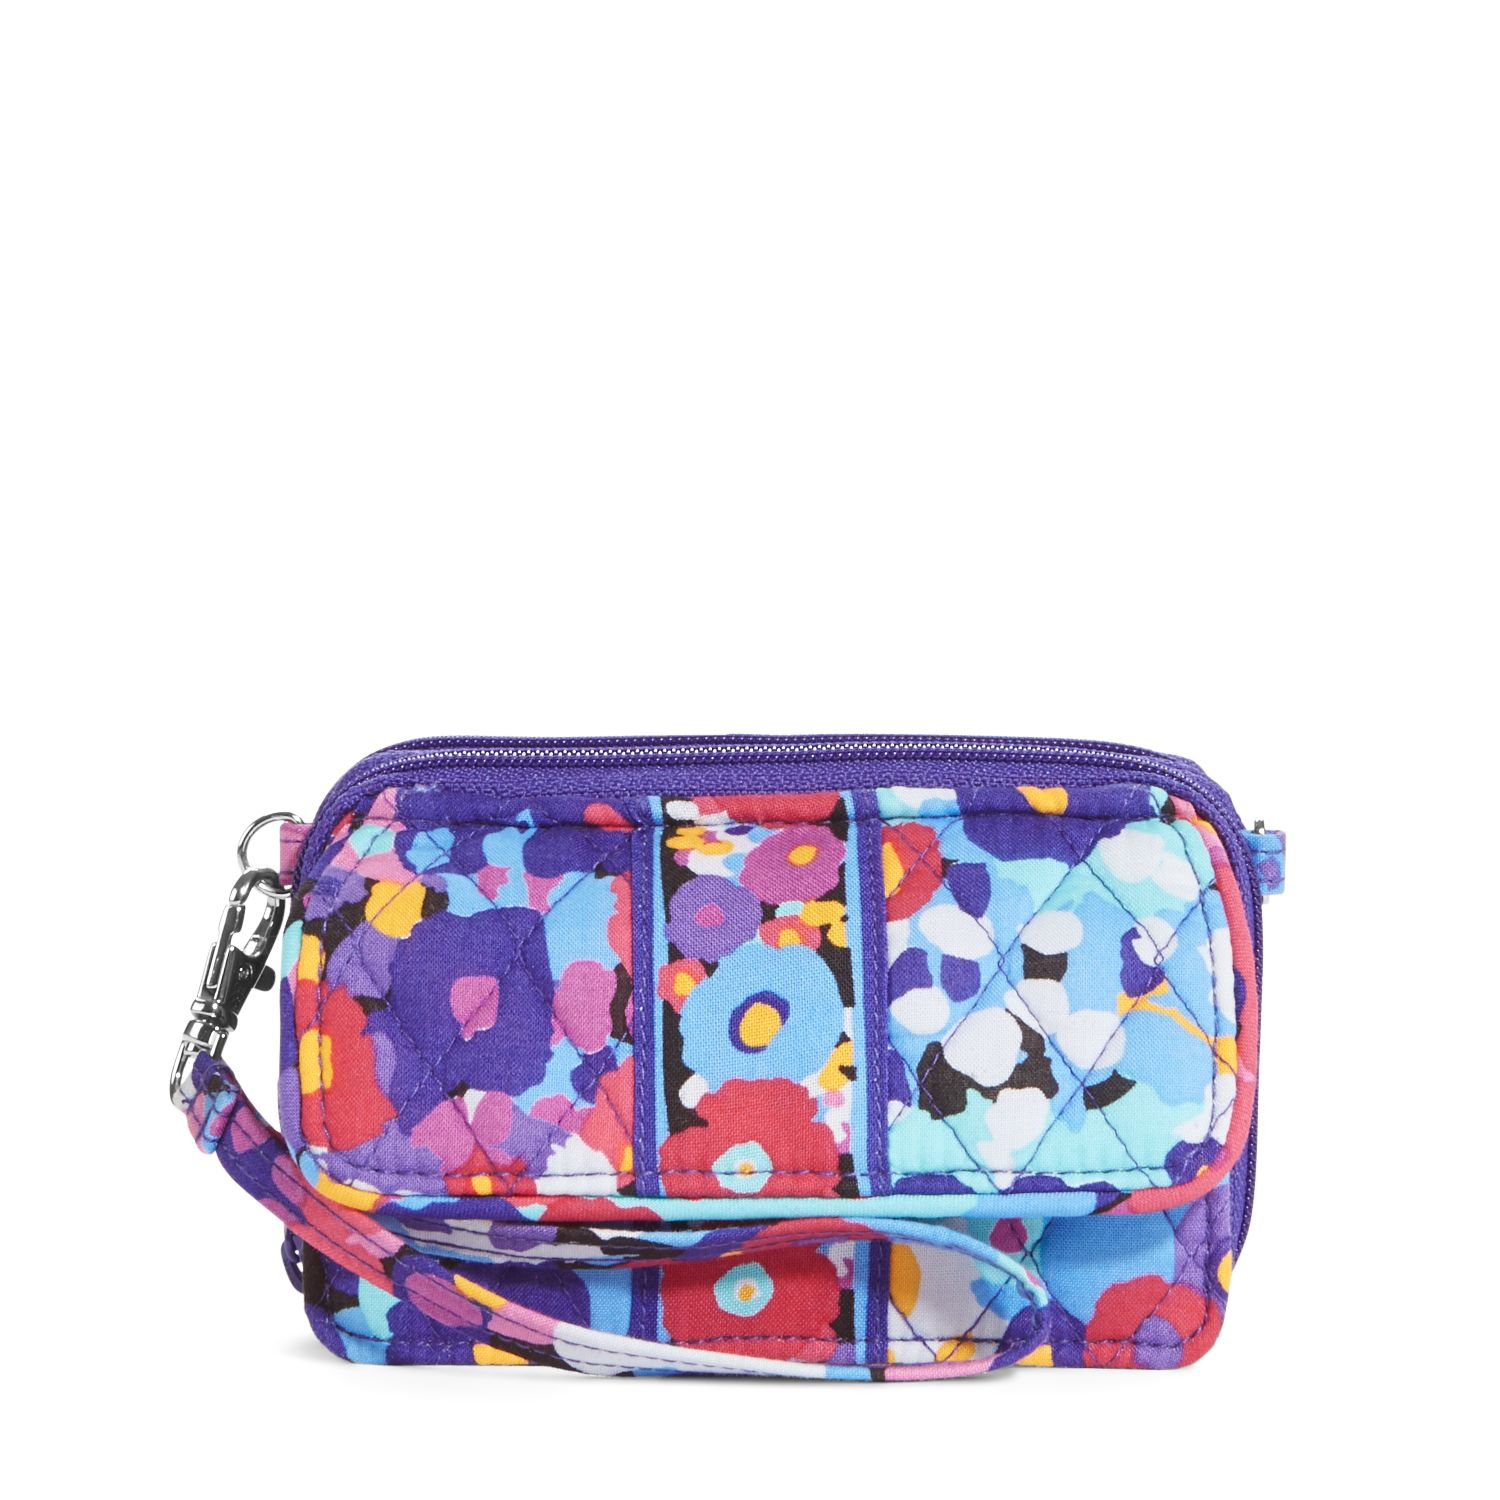 Vera Bradley All In One Crossbody Bag Amp